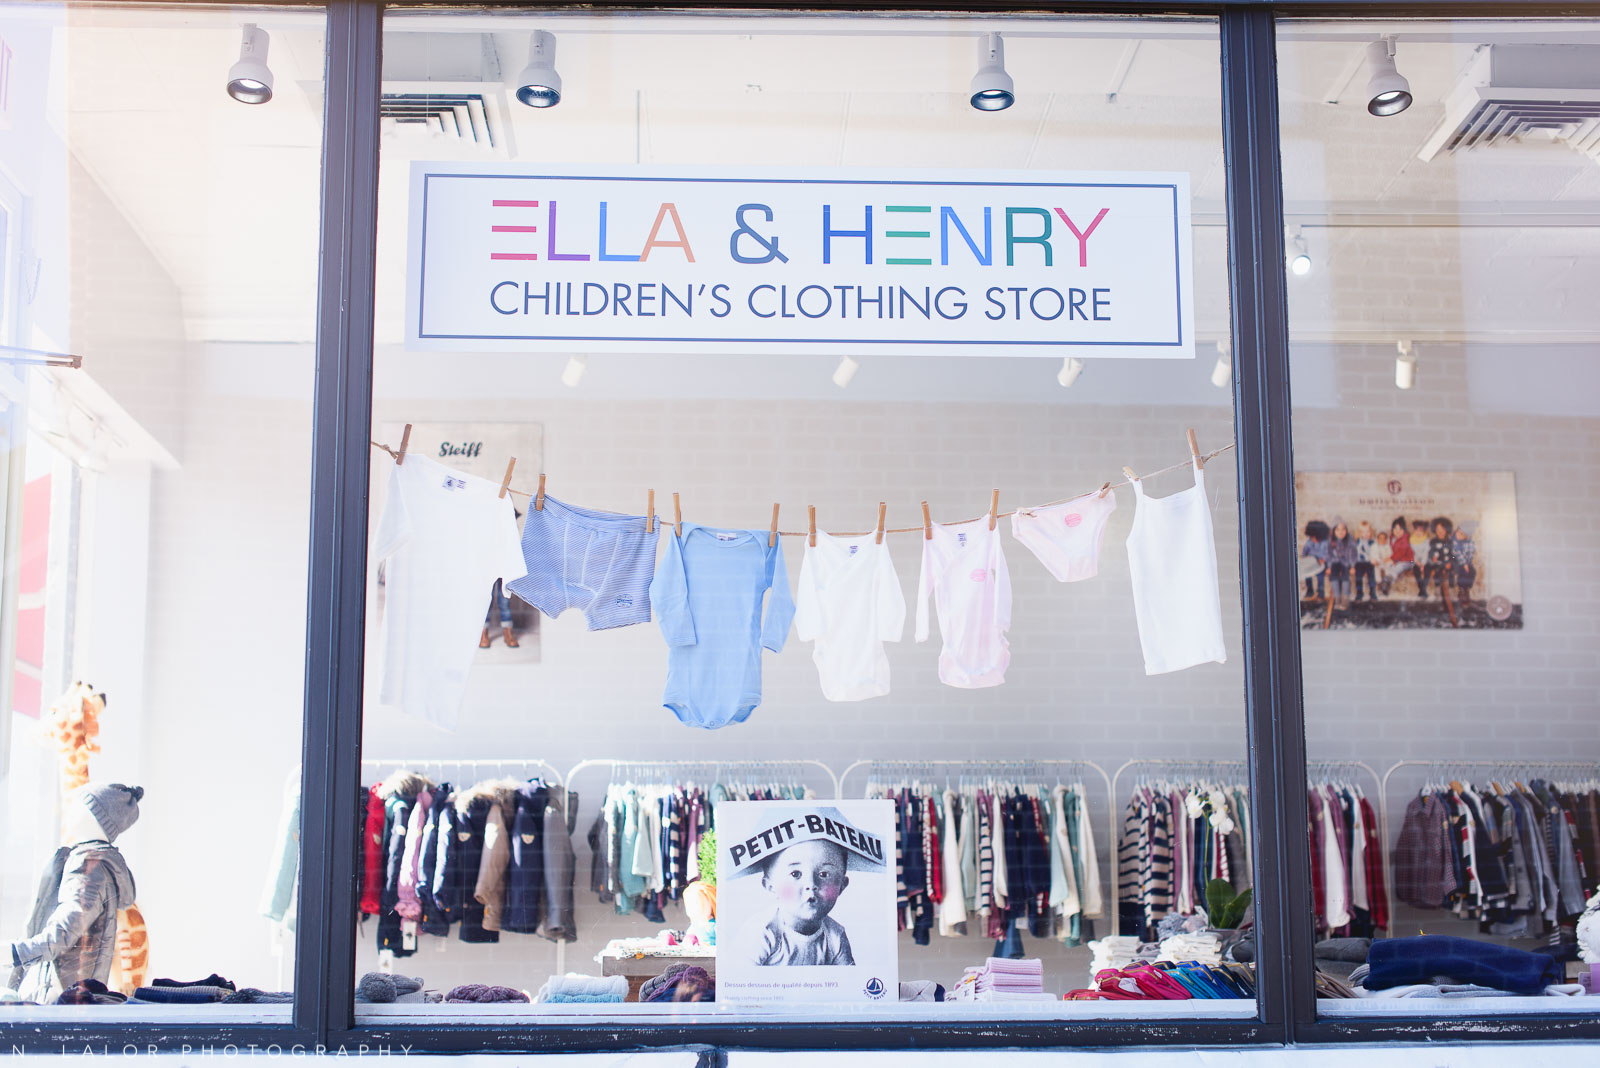 Ella and Henry kids clothing store in New Canaan Connecticut. Photo by N. Lalor Photography.